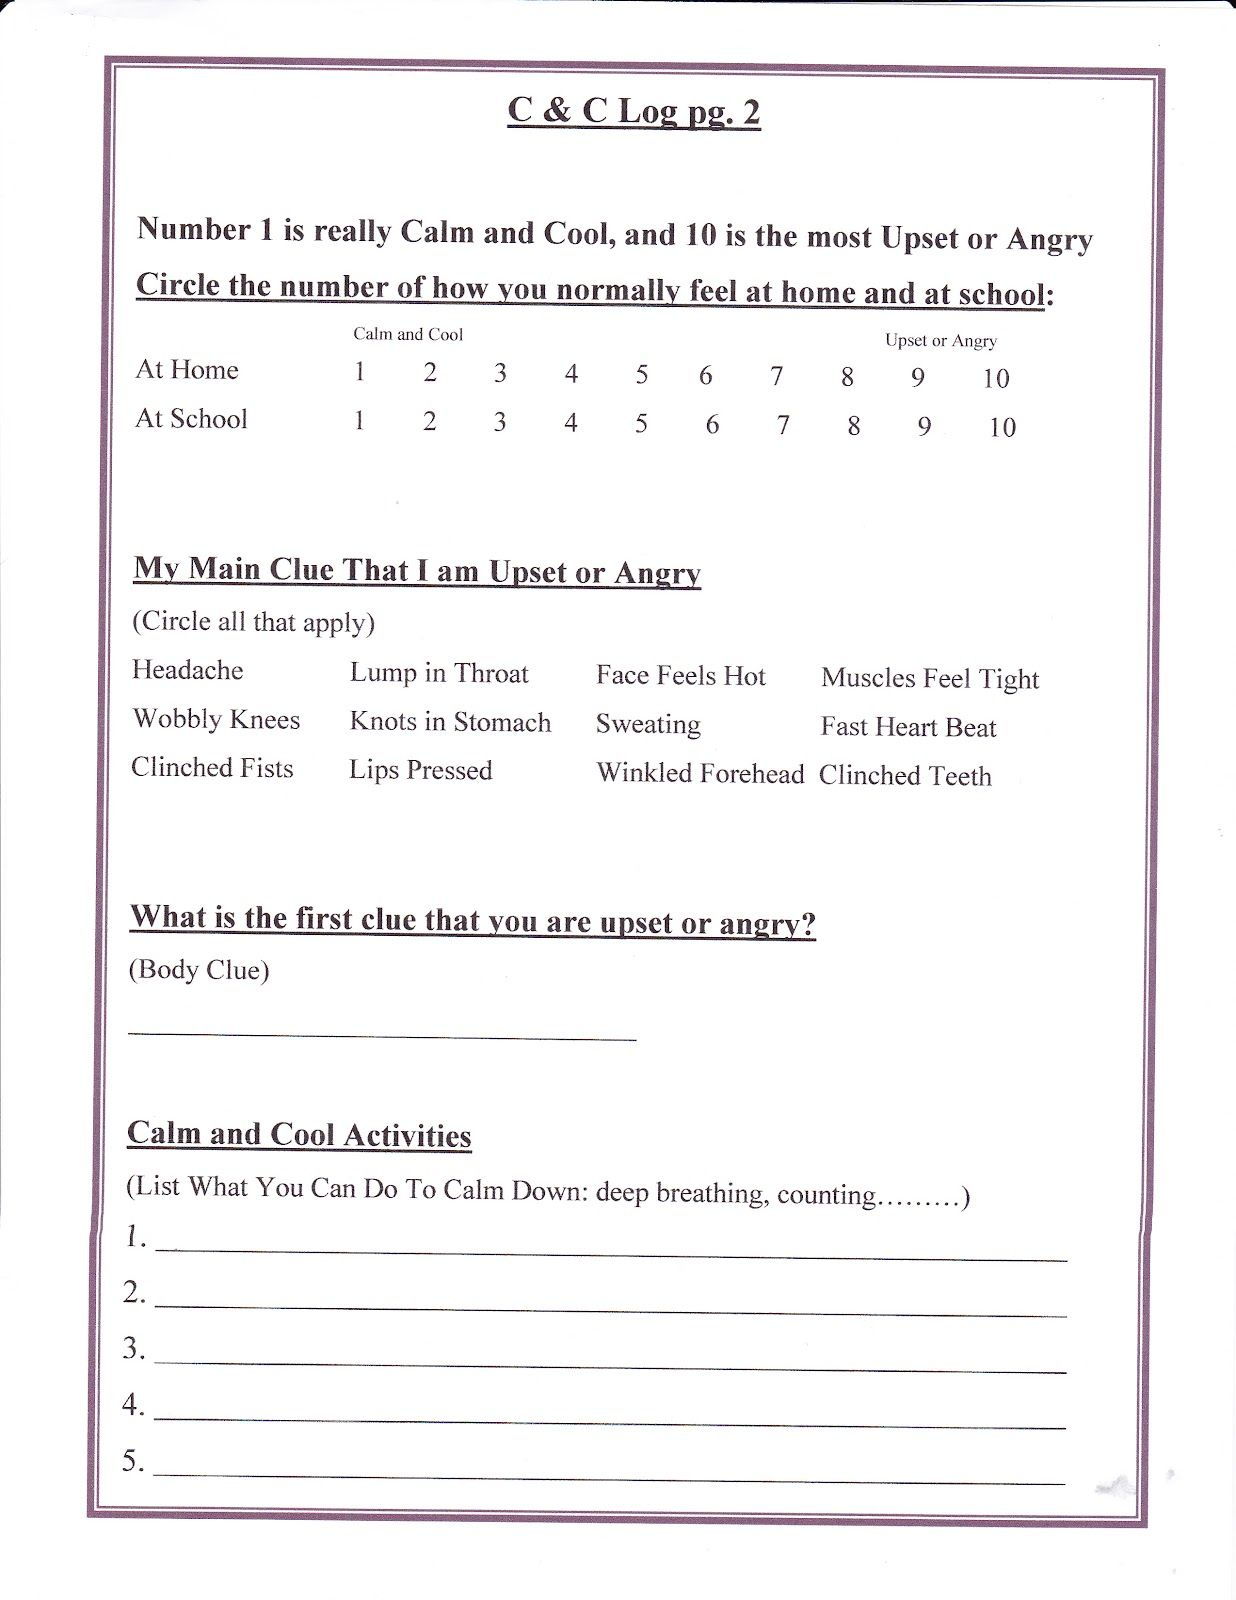 worksheet Free Anger Management Worksheets lorinda character education self control 9 anger work sheet